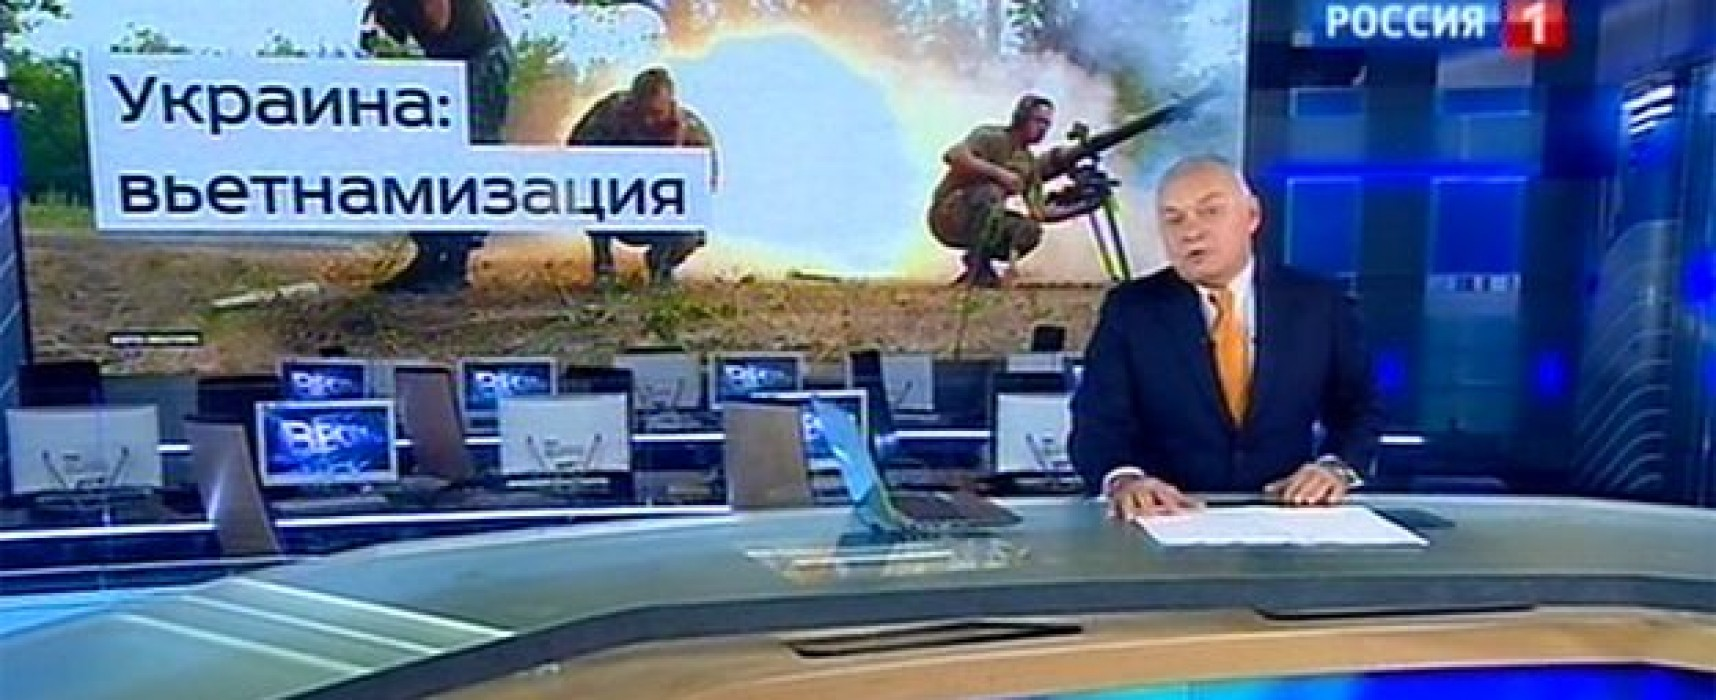 How Russian TV changed during Ukraine crisis